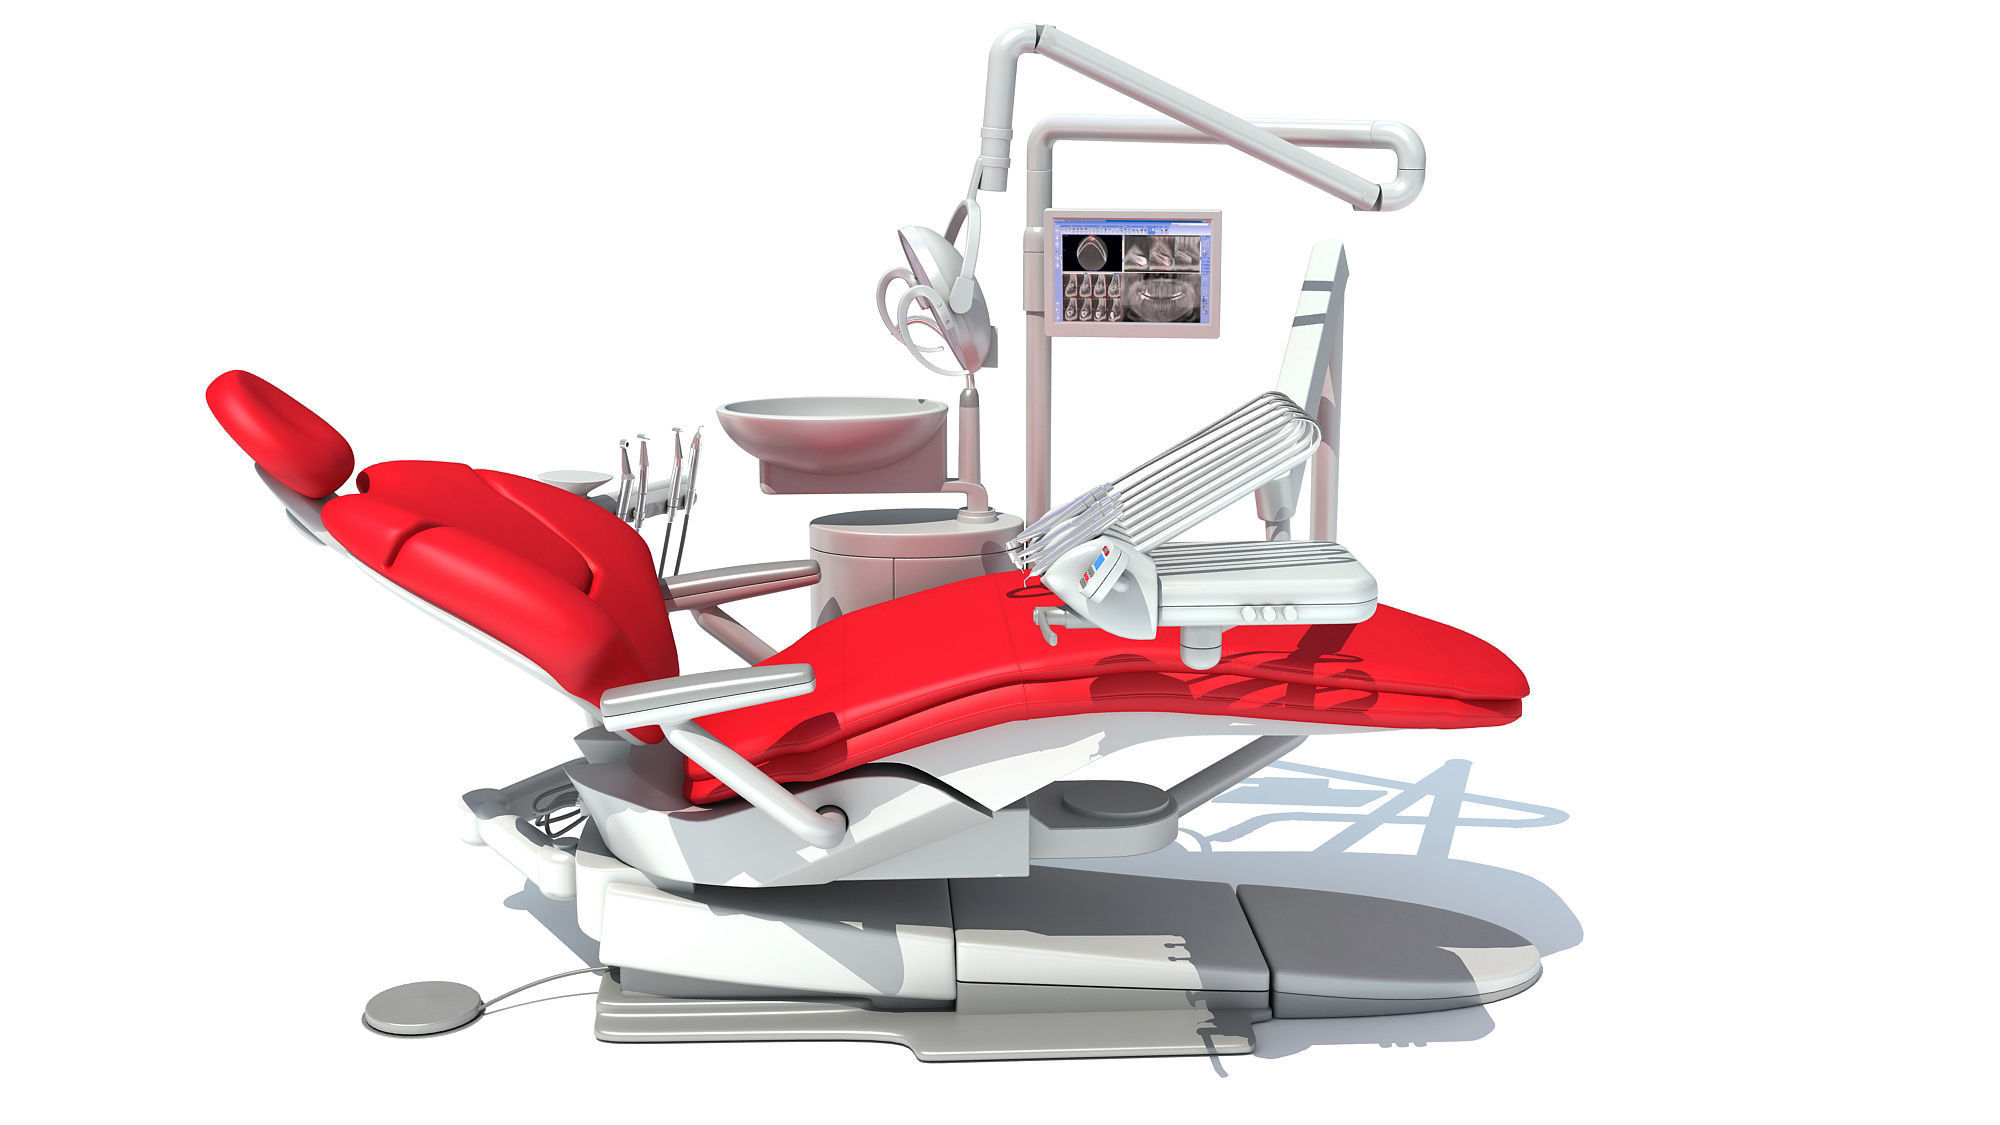 Dental Treatment Station with Chair